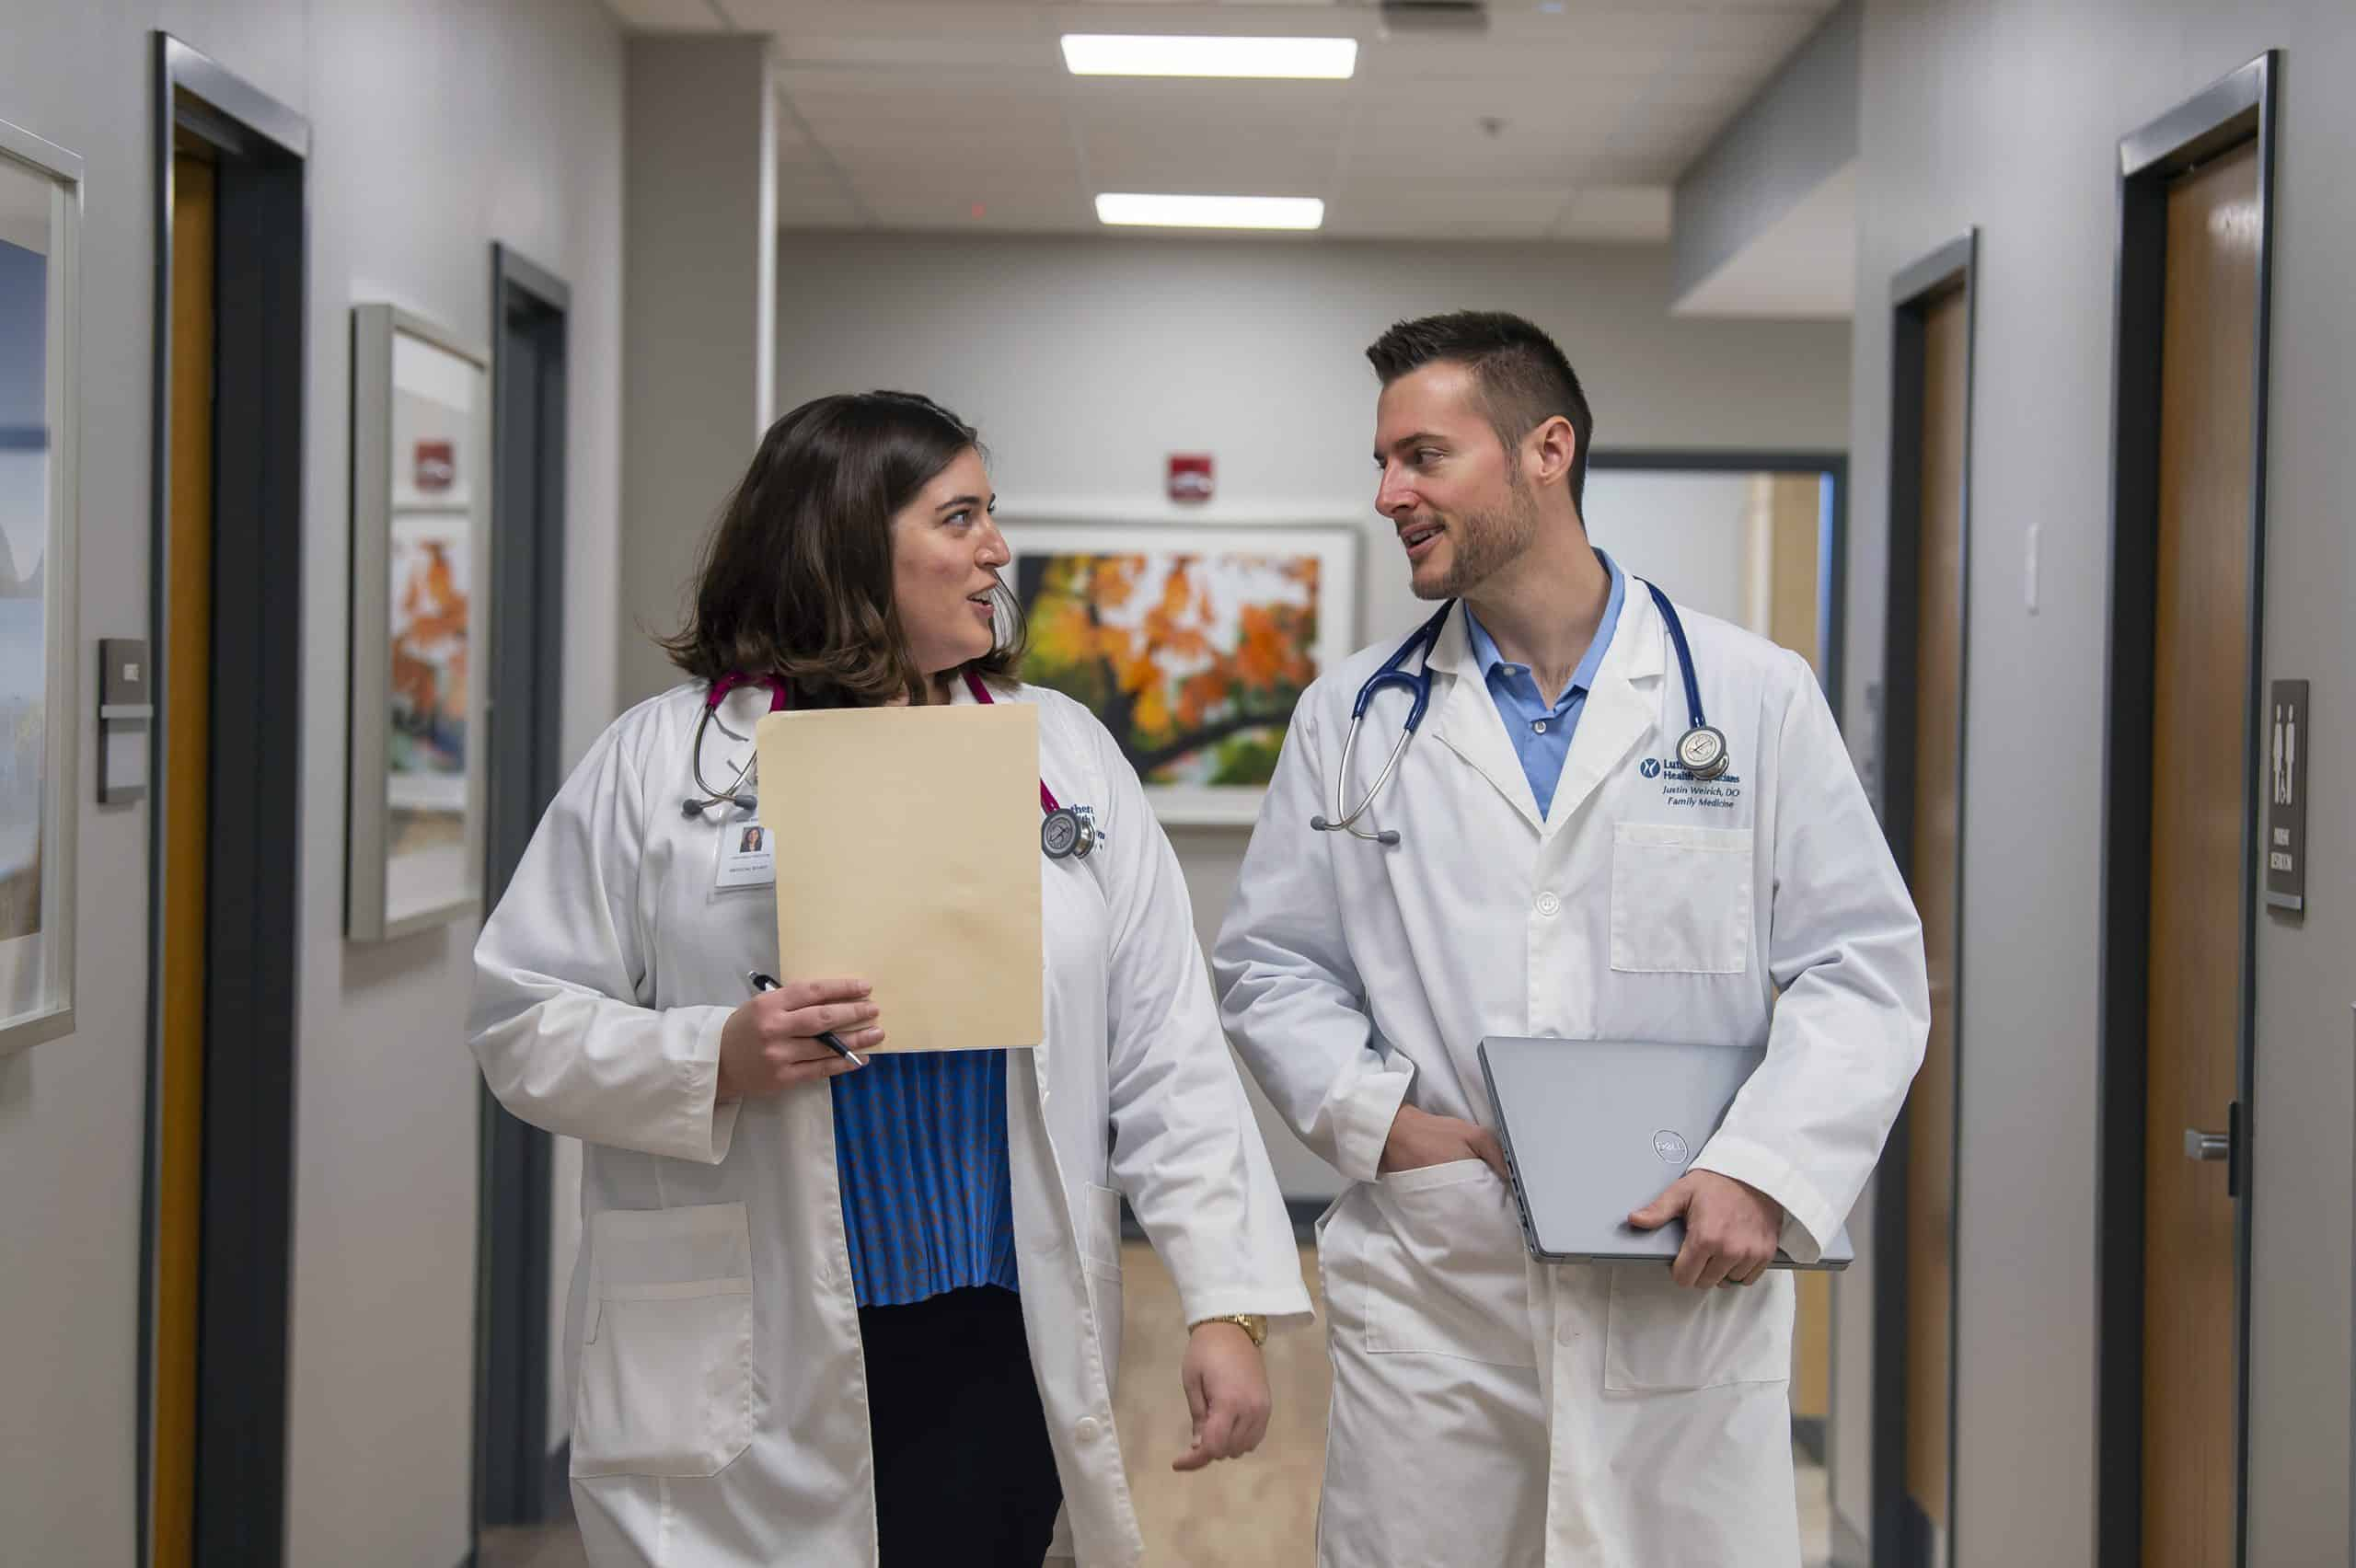 Dr. Justin Weirich 'o6 (right) with a colleague at Lutheran Health Physicians, Fort Wayne, Ind. Photo credit Tim Brumbleloe.